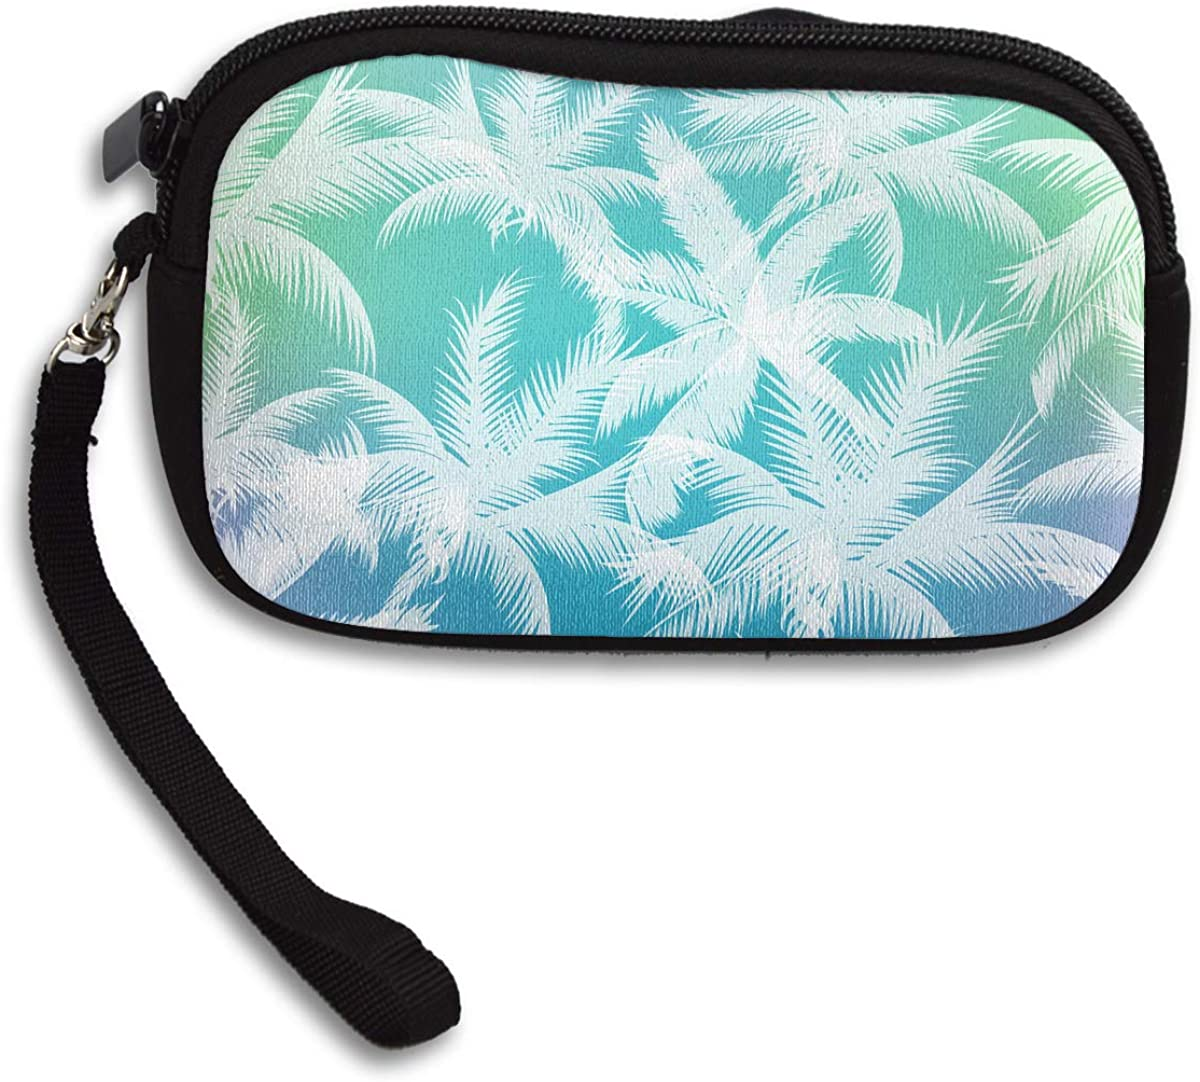 Palm Trees Pattern Coin Purse Cute Change Purse,Make Up Bag,Cellphone Bag With Handle Purses For Women